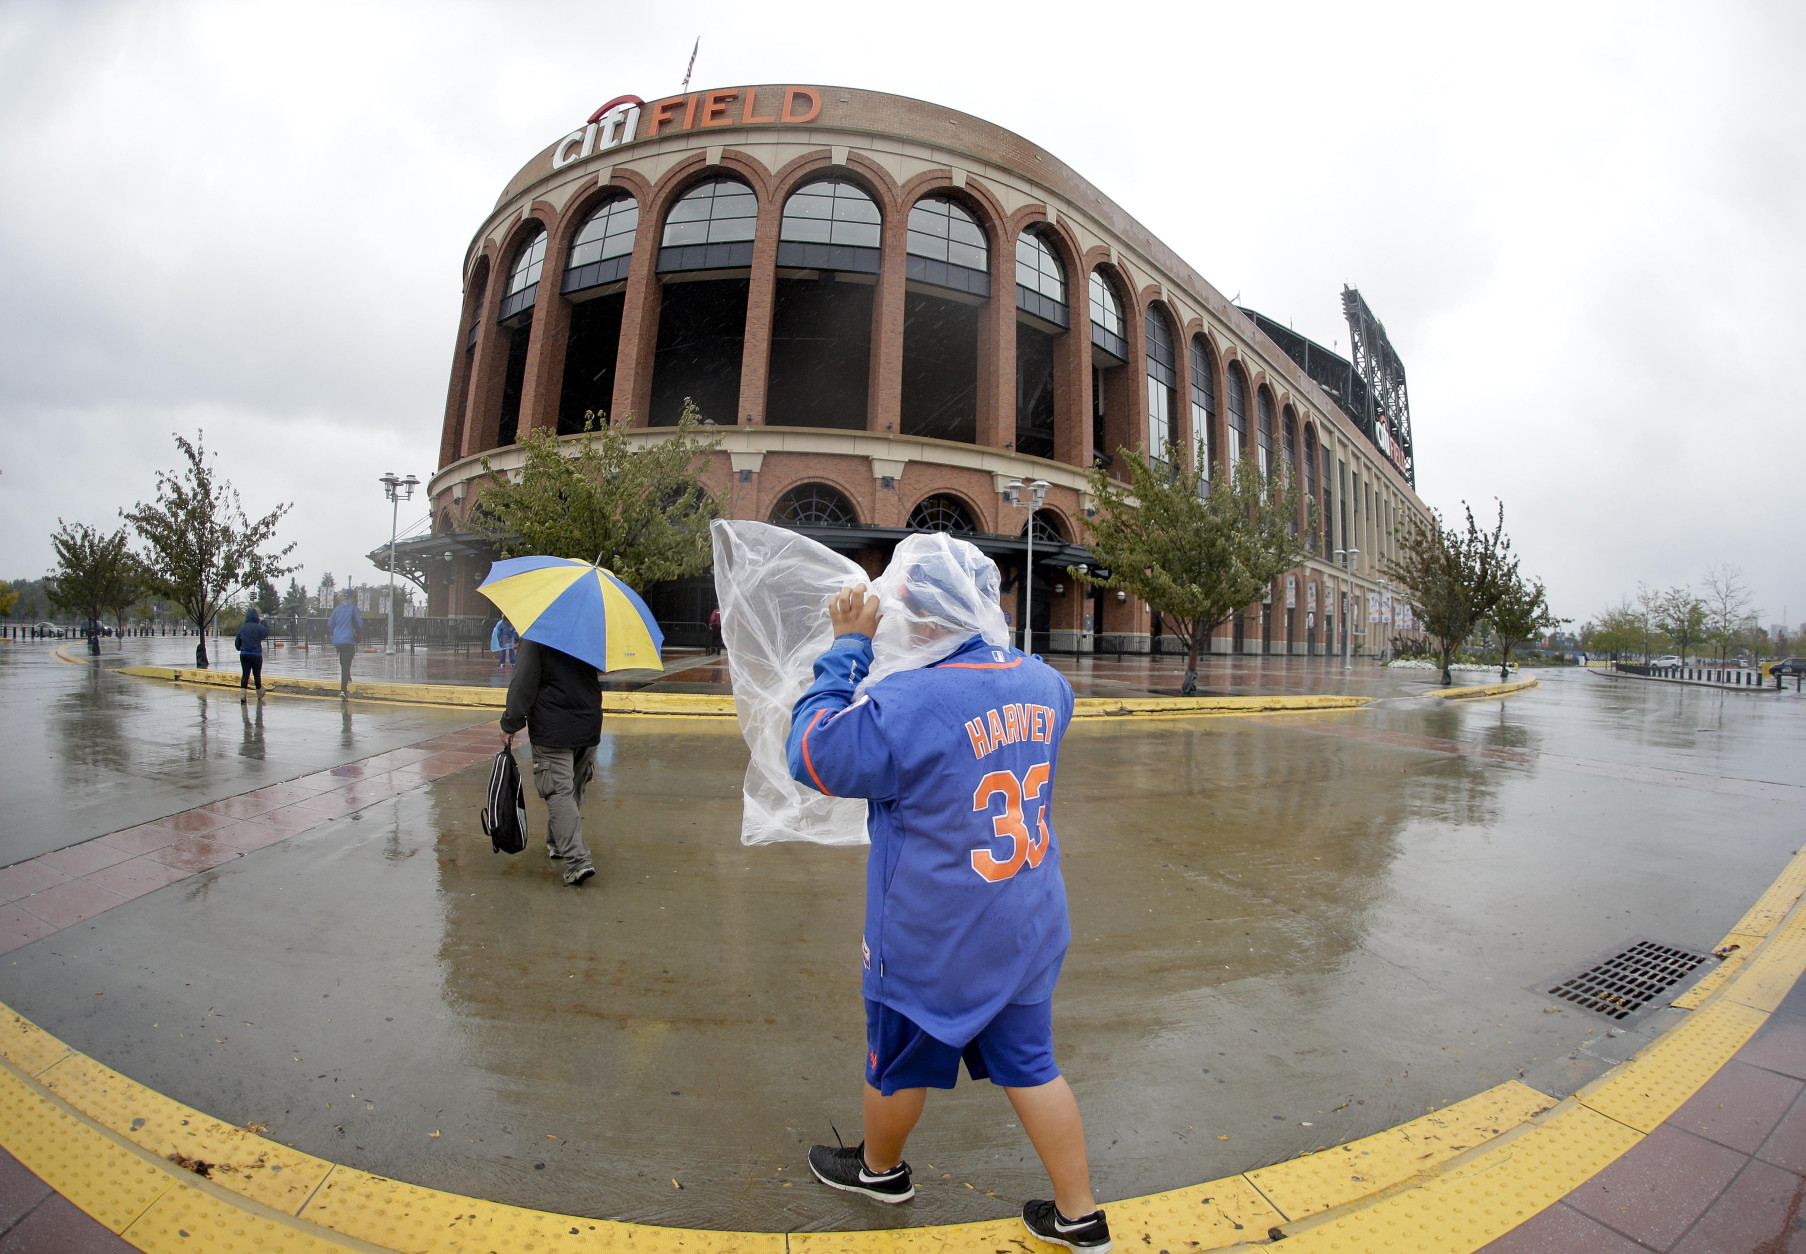 A baseball fan walks around Citi Field after the baseball game between the Washington Nationals and New York Mets was postponed because of rain, Friday, Oct. 2, 2015, in New York. The game will be played on Saturday as a double header. (AP Photo/Julie Jacobson)